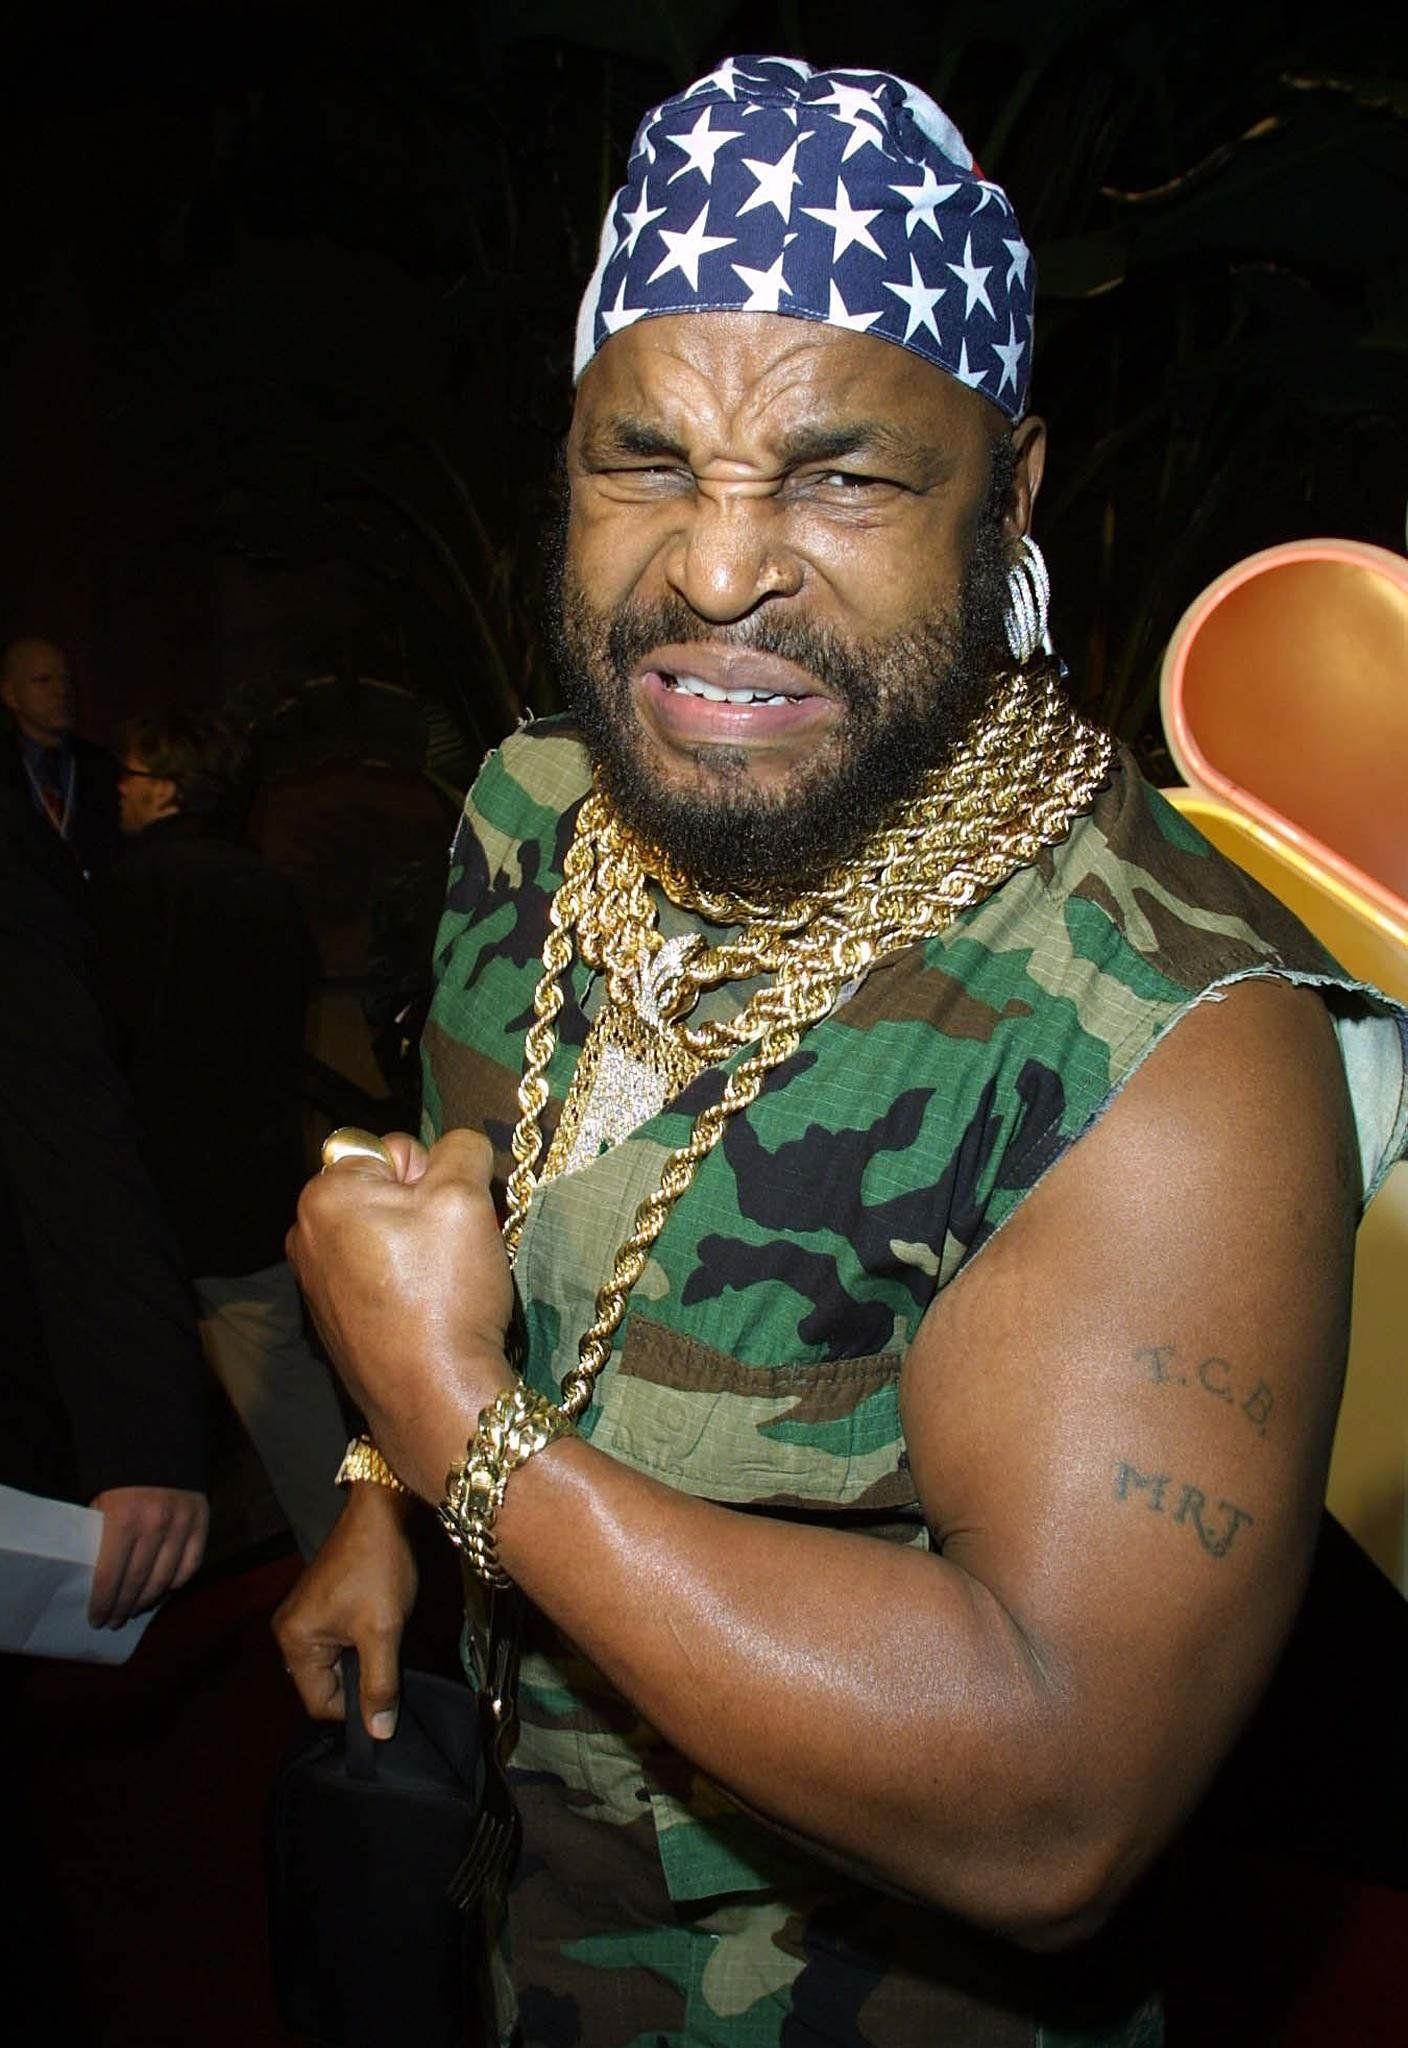 LOS ANGELES, UNITED STATES:  Mr. T, star of the former television series the A Team, shows his celebrated muscles at NBC's 75th anniversary all-star reception held at the Garden of Eden in Hollywood, 09 January 2002. Stars from previous and present NBC shows attended the reception.   AFP PHOTO STEWART COOK (Photo credit should read STEWART COOK/AFP/Getty Images)